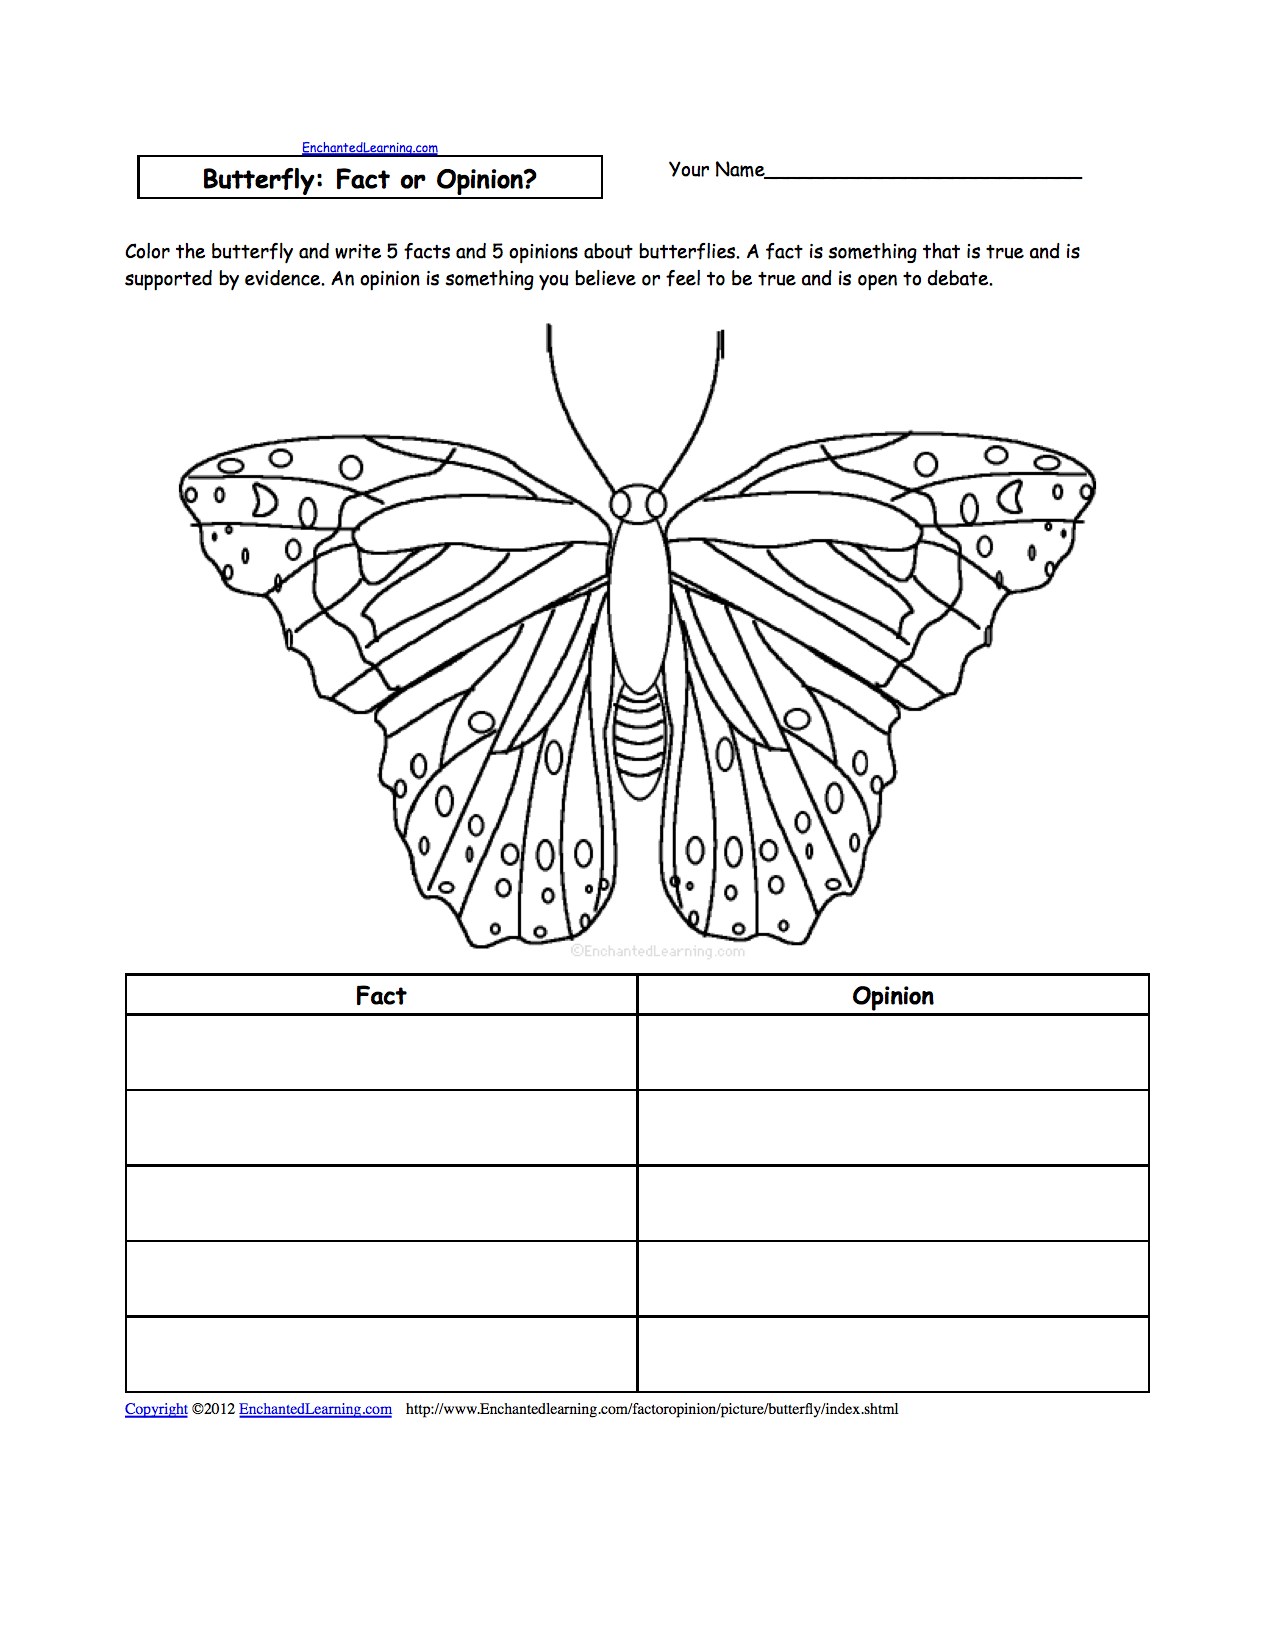 Anatomy Of Painted Lady Butterfly – Lifeinharmony